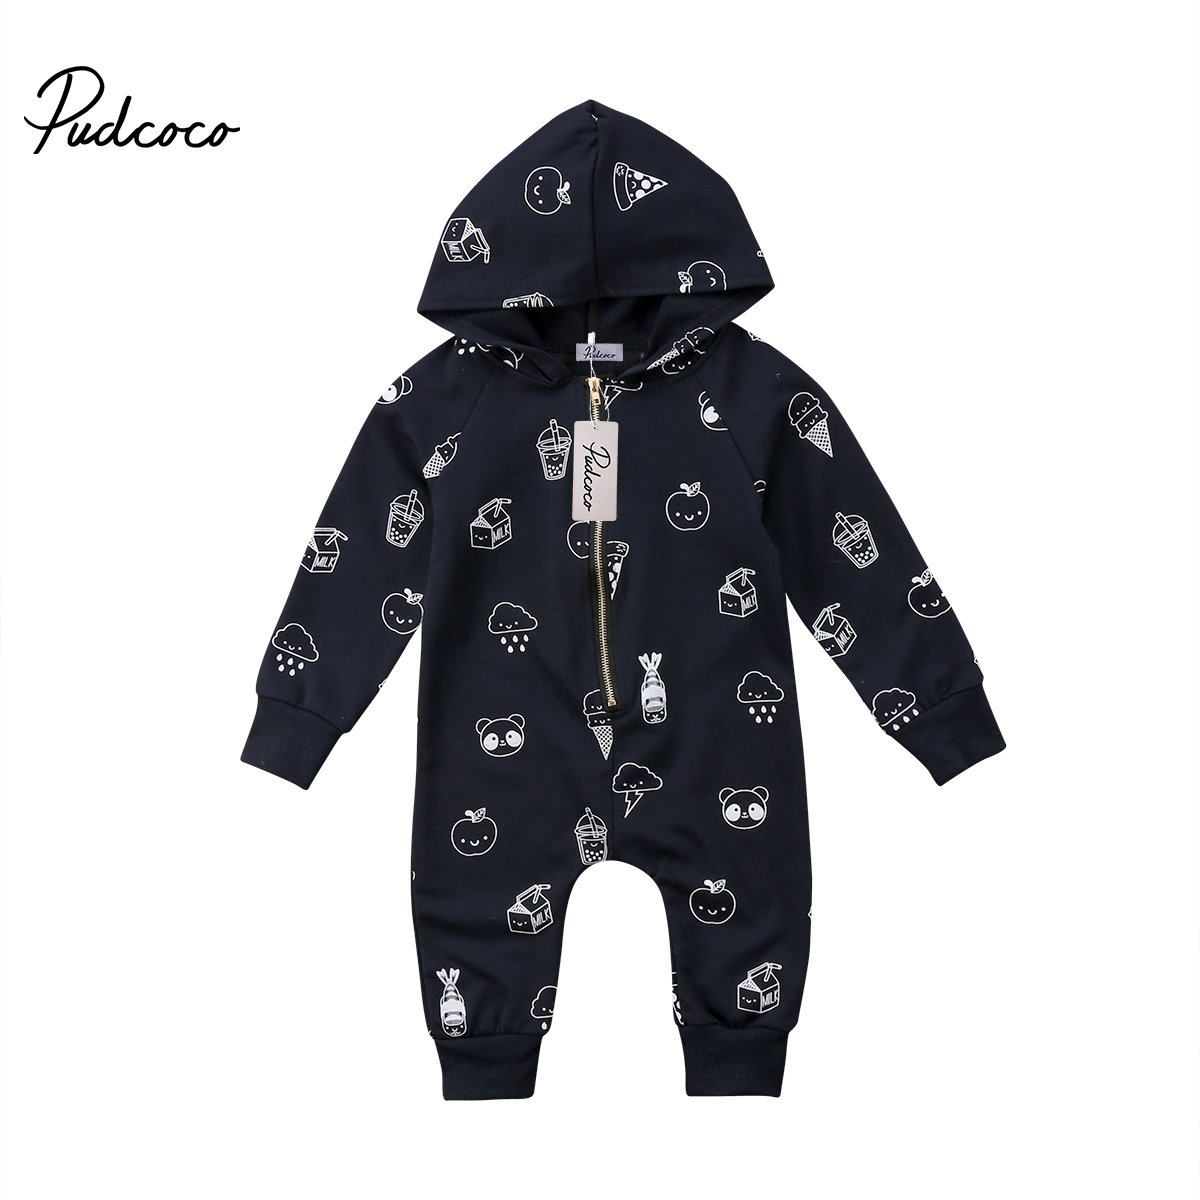 New Pudococo Baby Boys Girls Infant Romper Ice Cream Print Hooded Spring Autumn Jumpsuit Clothes Long Sleeve Zipper Romper 2018